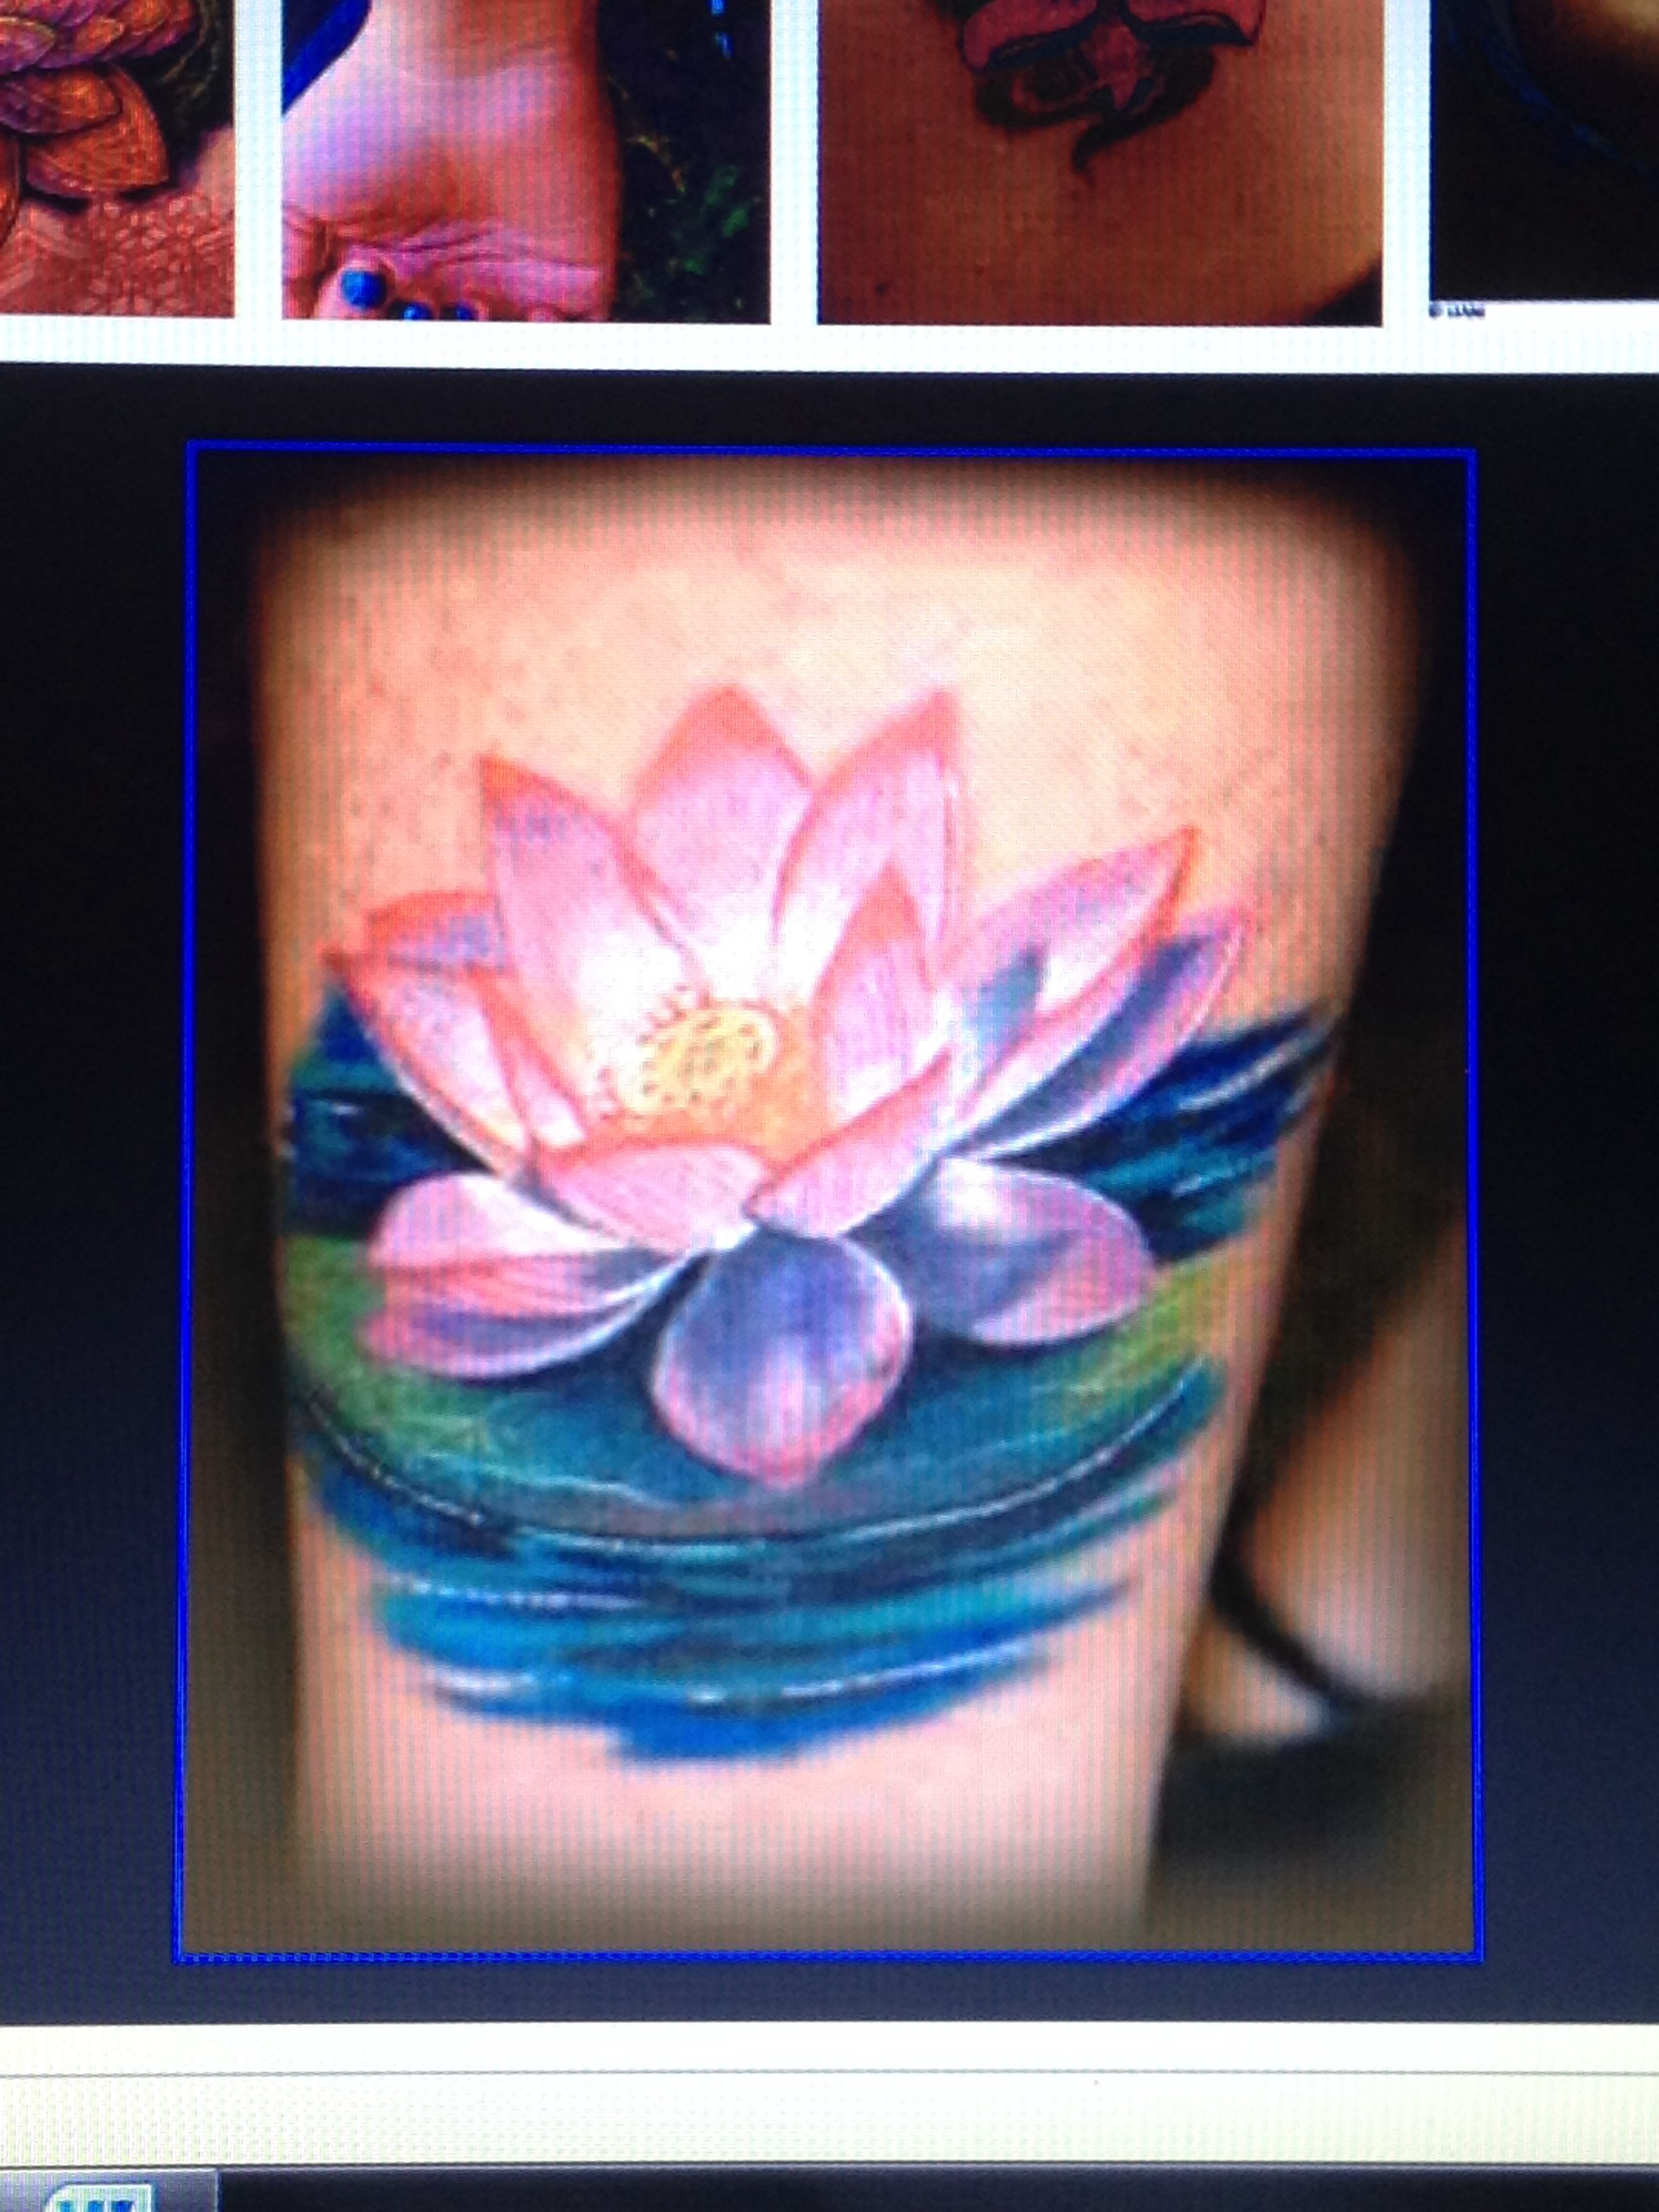 Pin by keri campbell on ink ideas pinterest lotus tatoo and tattoo among the many lotus tattoo designs there are the beautiful white lotus flower tattoo designs that particularly hold your attention with their myriad izmirmasajfo Image collections